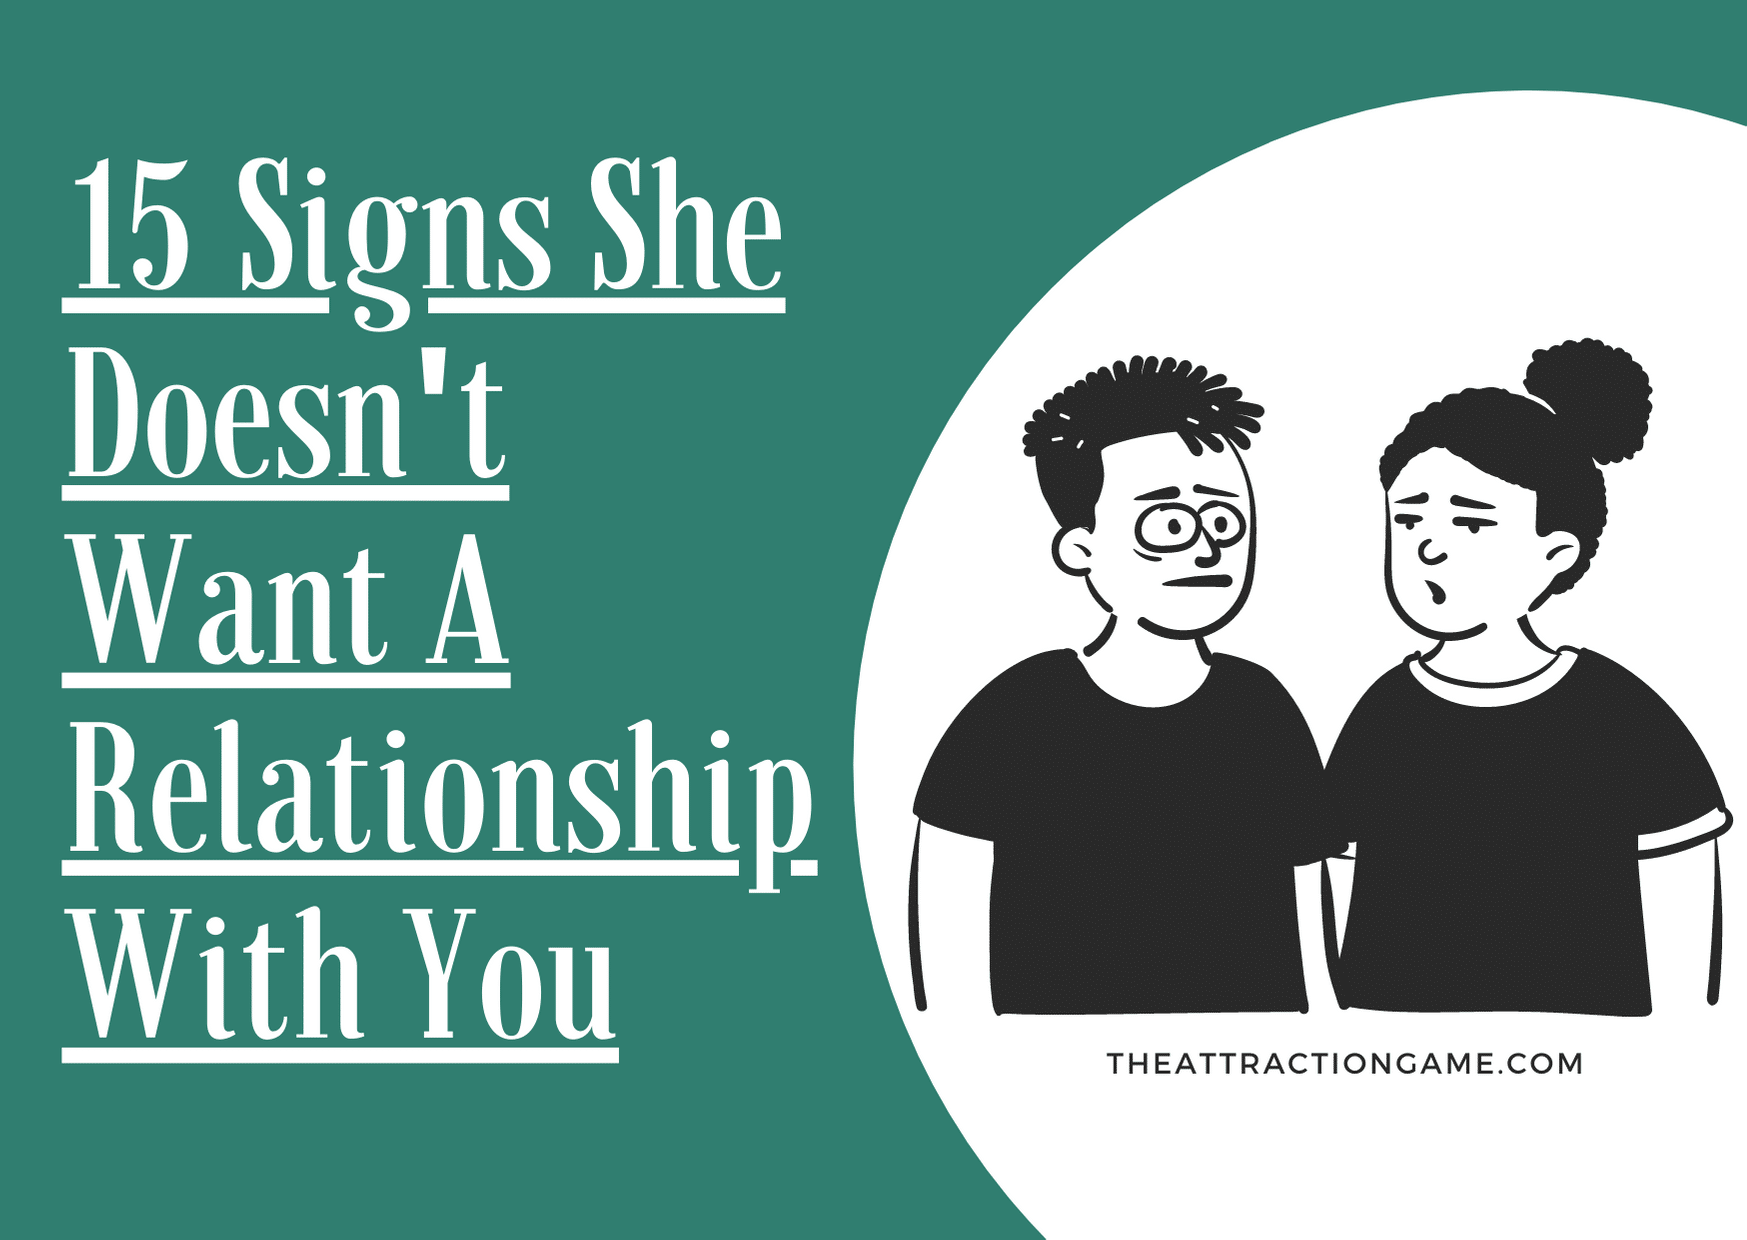 signs she doesn't want a relationship, she doesn't want a relationship, why she doesn't want a relationship, reasons why she doesn't want a relationship, signs she isn't interested in you, signs she doesn't want to be with you